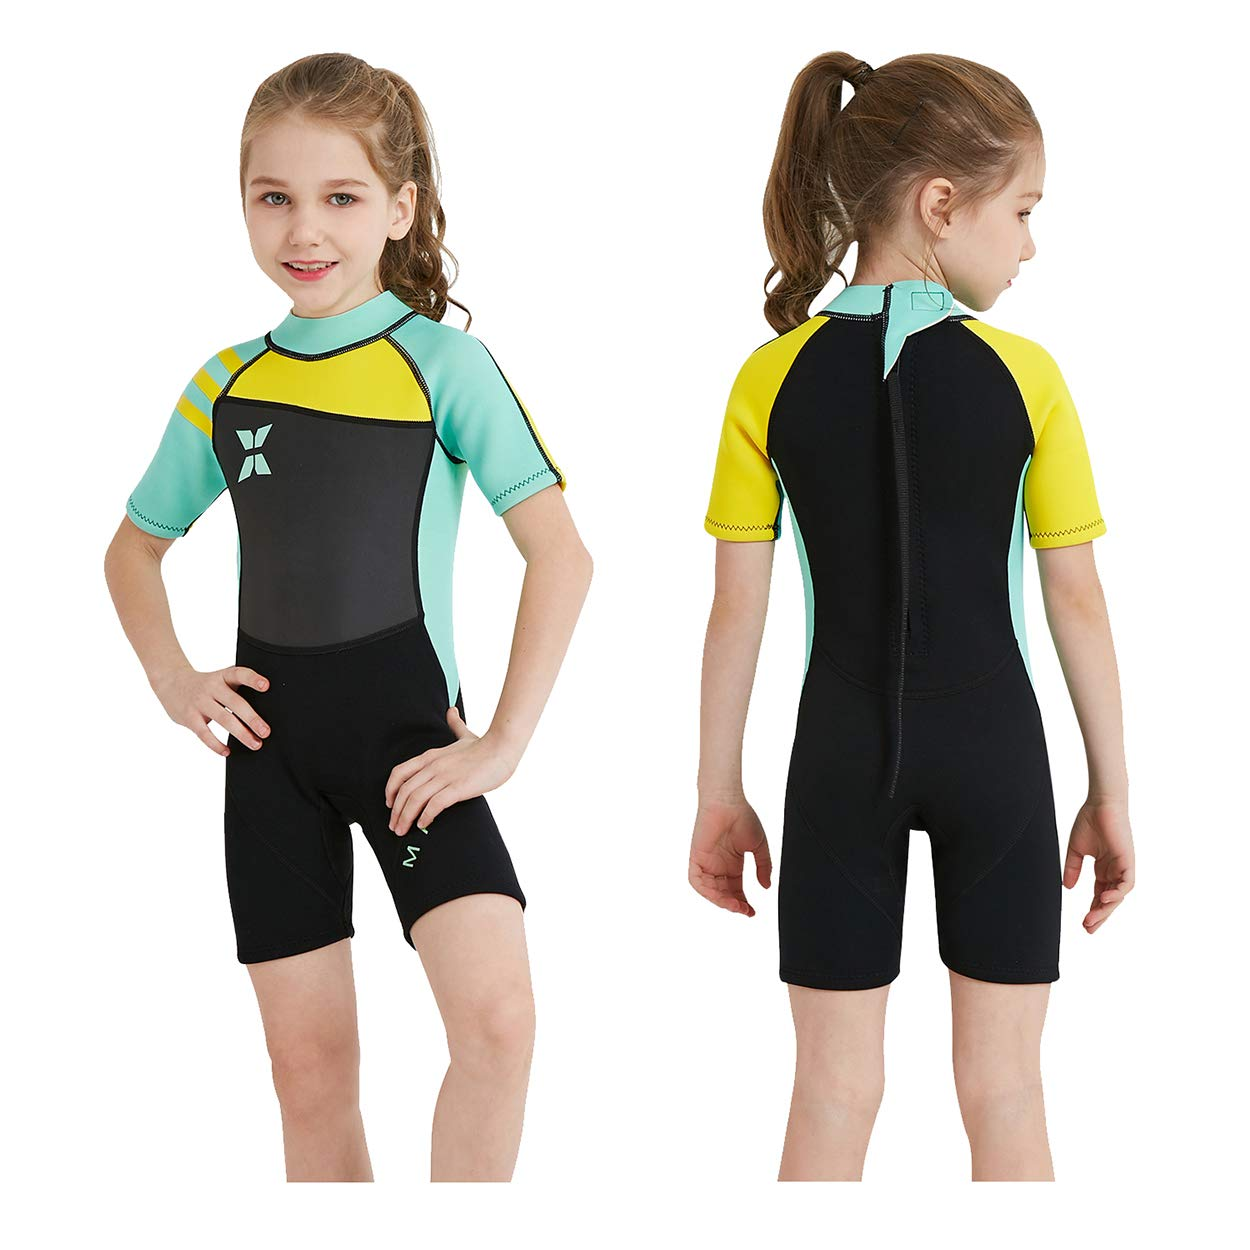 TOPDIVE Dive & SAIL Kids Wetsuit Shorty, 2.5mm Neoprene Thermal Swimsuit, Youth Boys and Girls Wet Suits for Snorkel Diving, Full Suit and Shorty Swimsuit (Green, Kids 2XL Size) by DIVE & SAIL